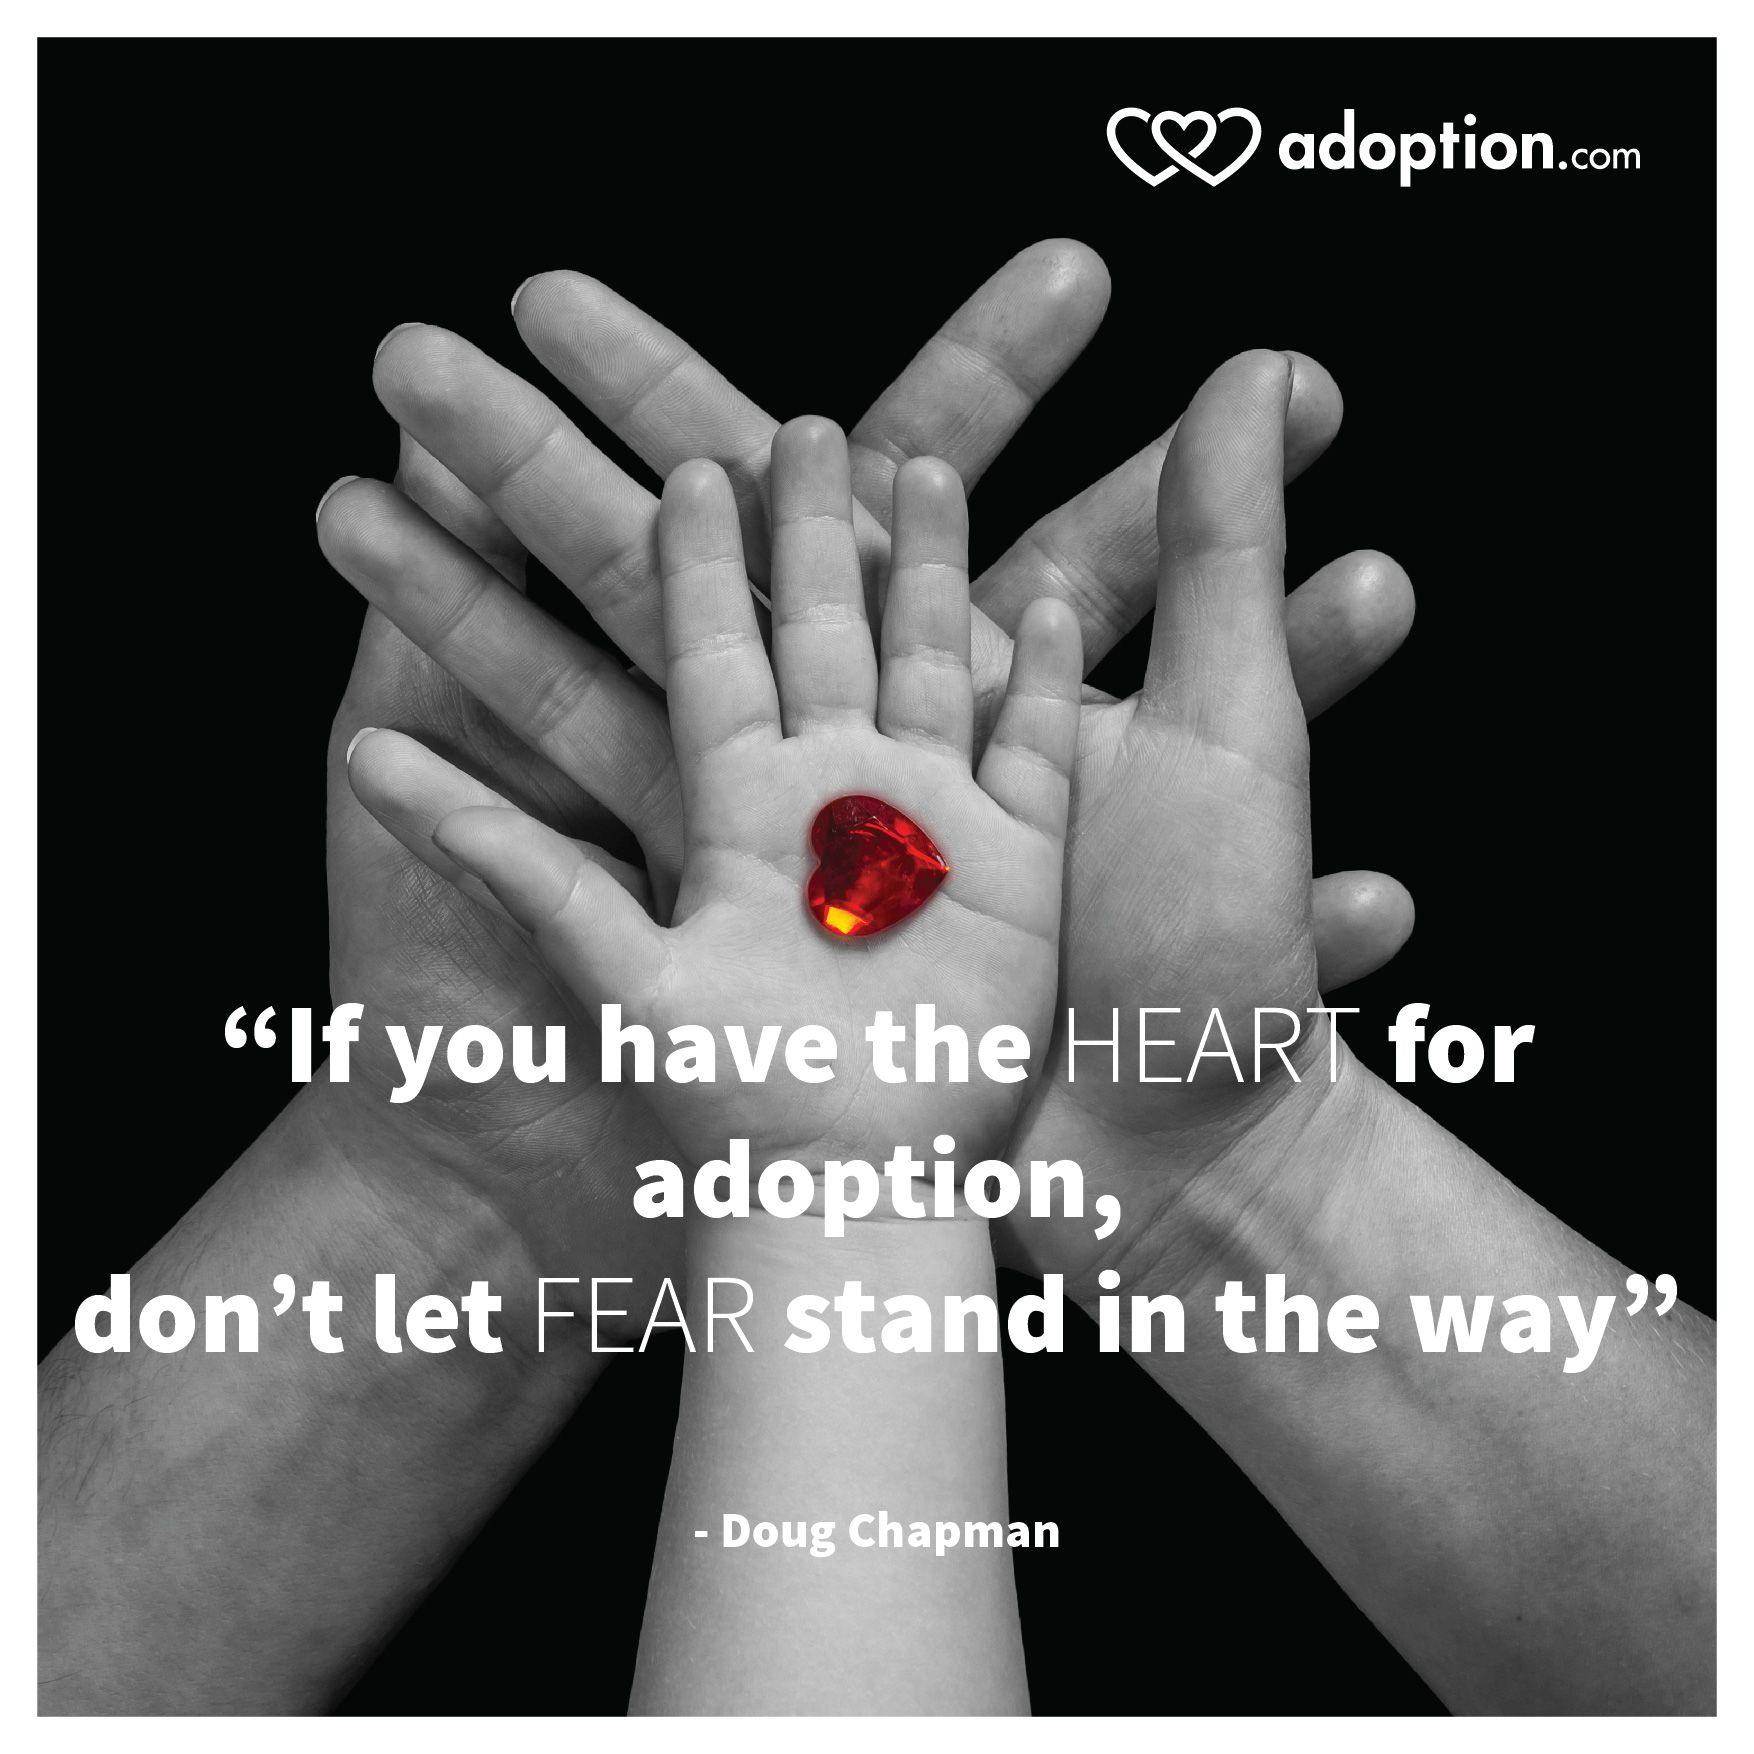 If you have the HEART for adoption, don't let FEAR stand